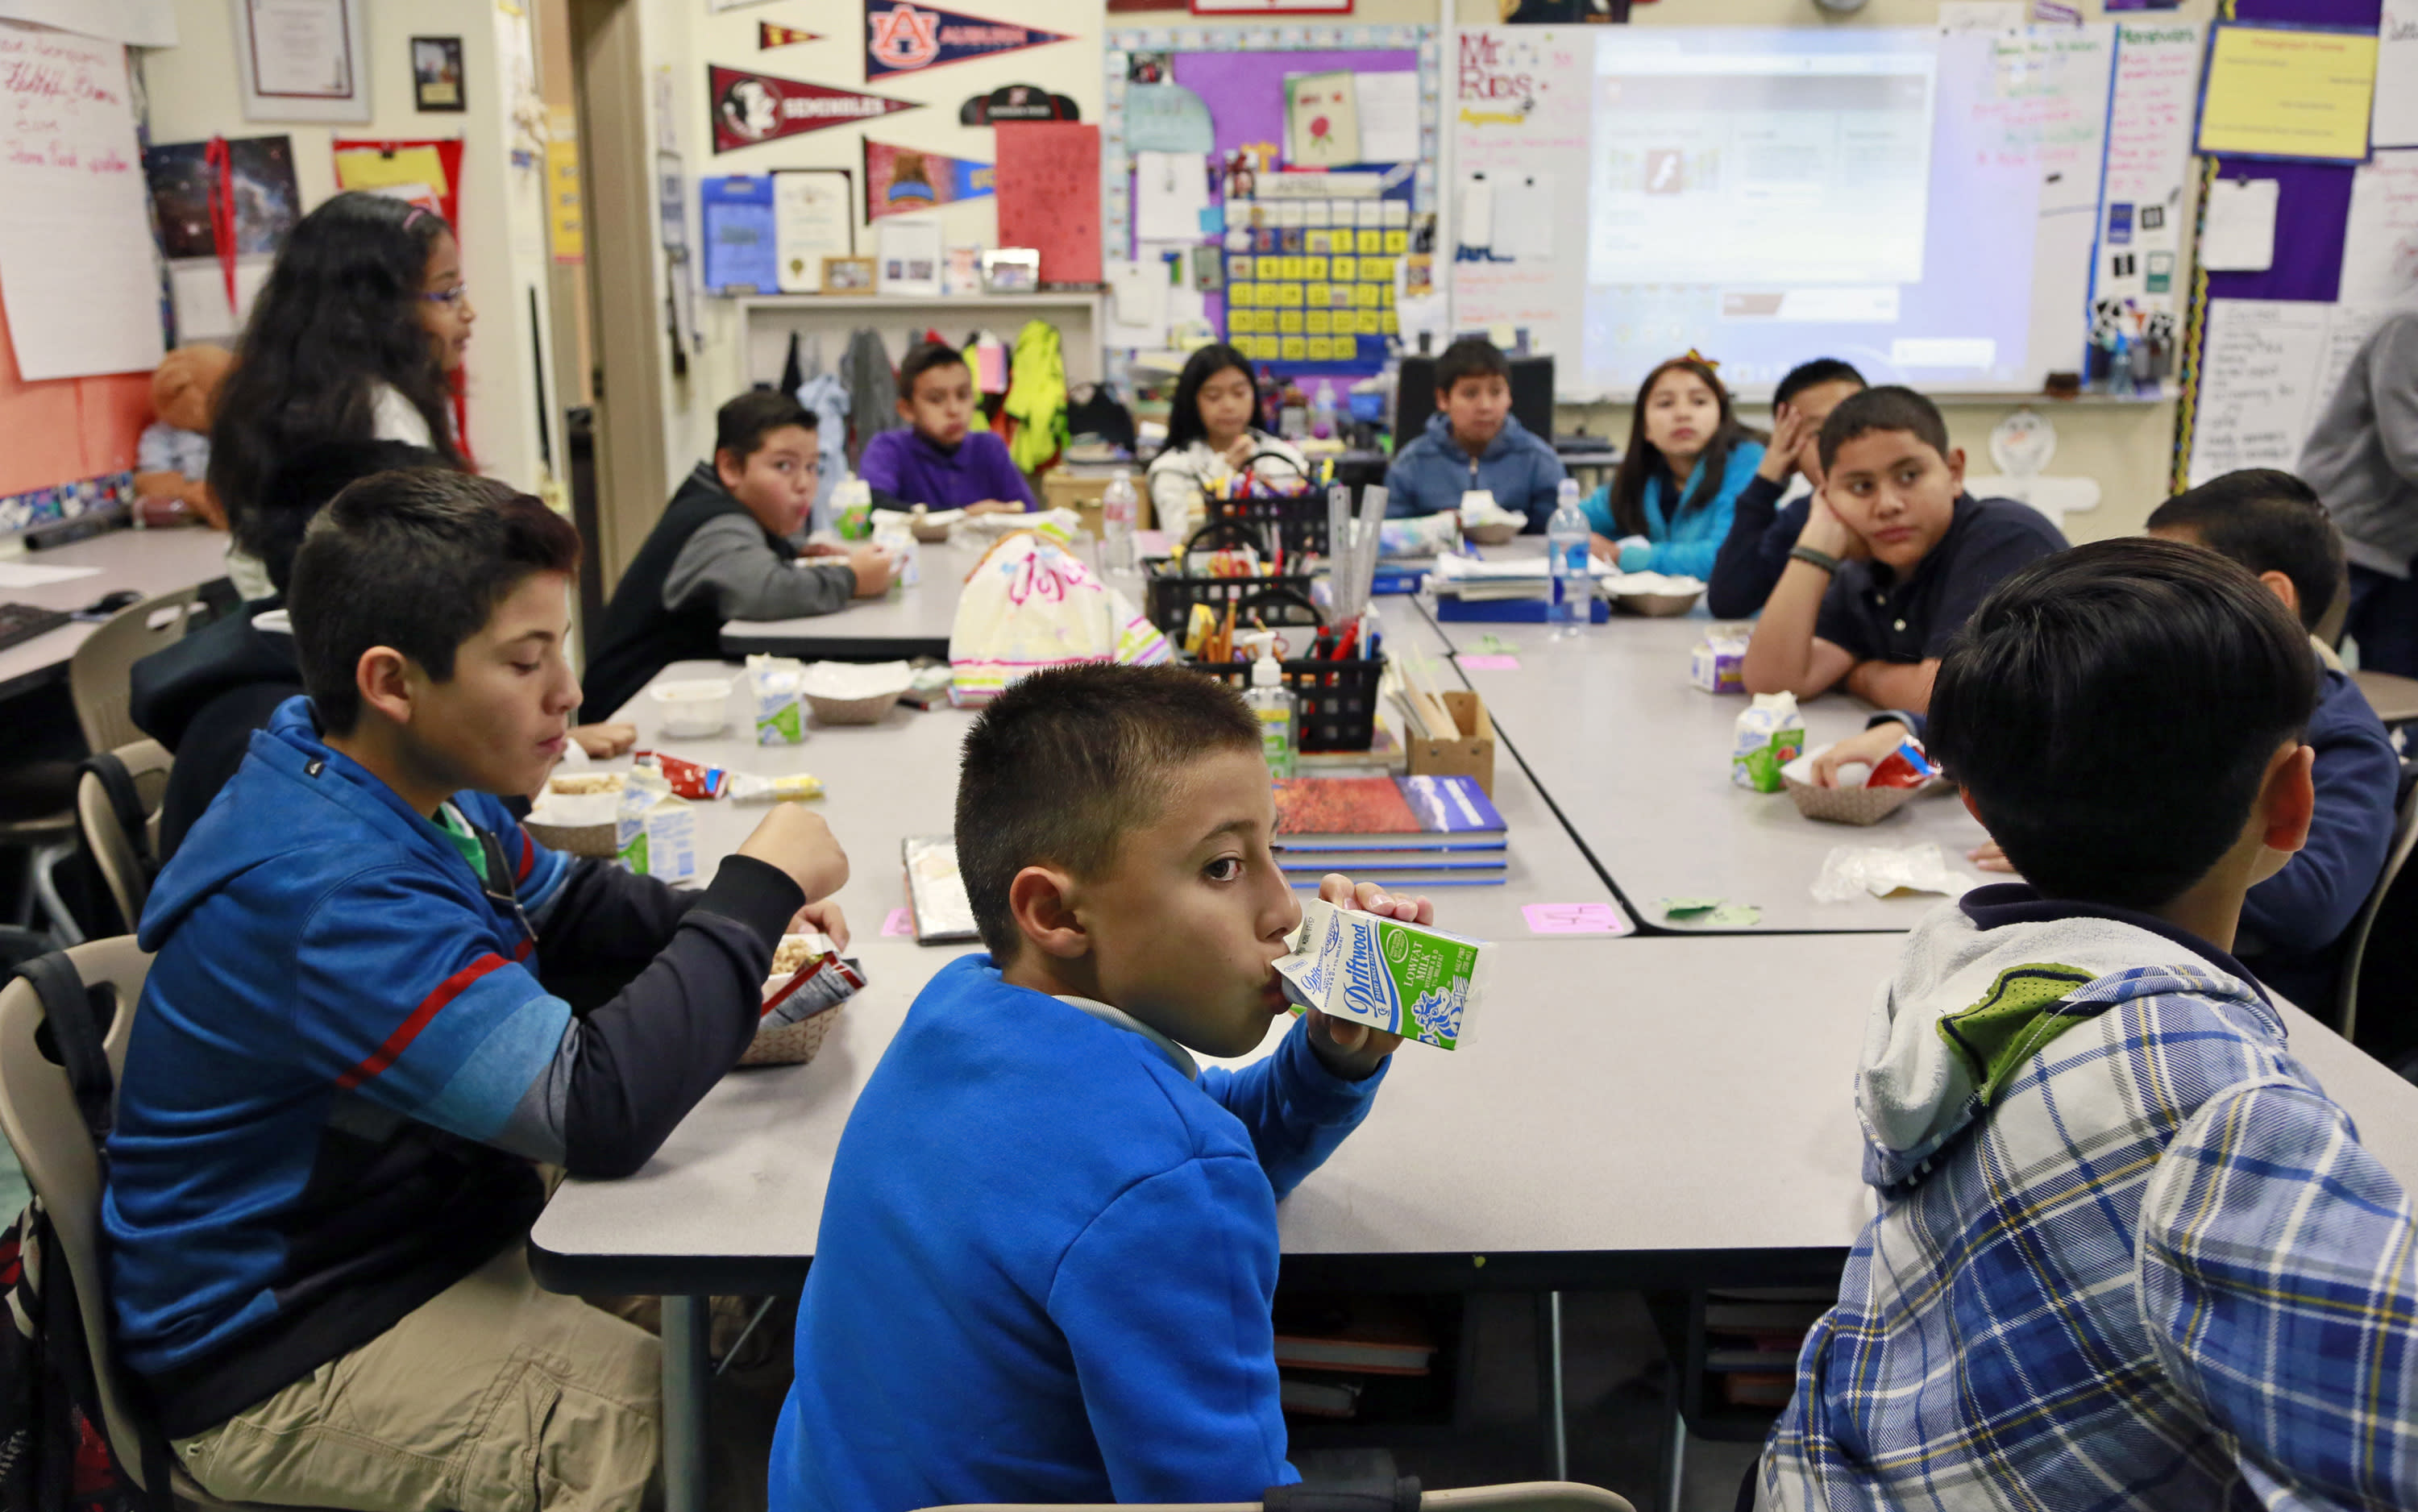 School districts, parents at odds over breakfast in class